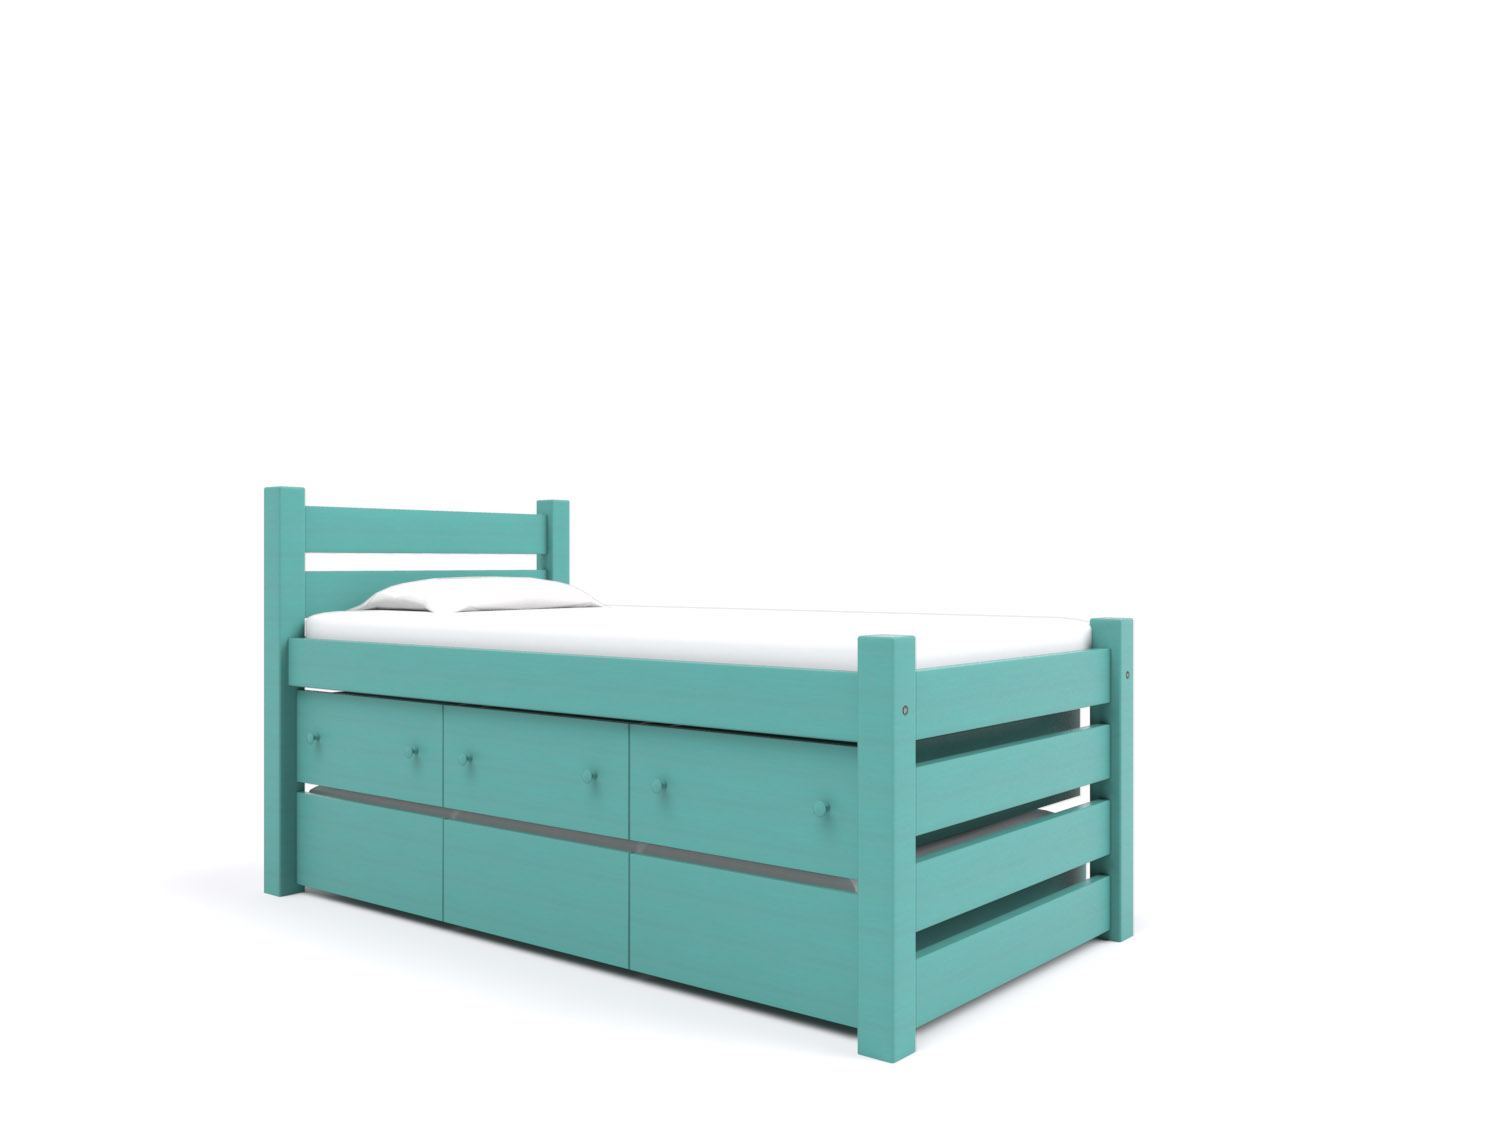 Maine Captain's Bed  - Includes a Trundle under three built-in Storage Drawers. Holds a twin or full-size mattress.  Starting at $2650:   Click for Custom Quote